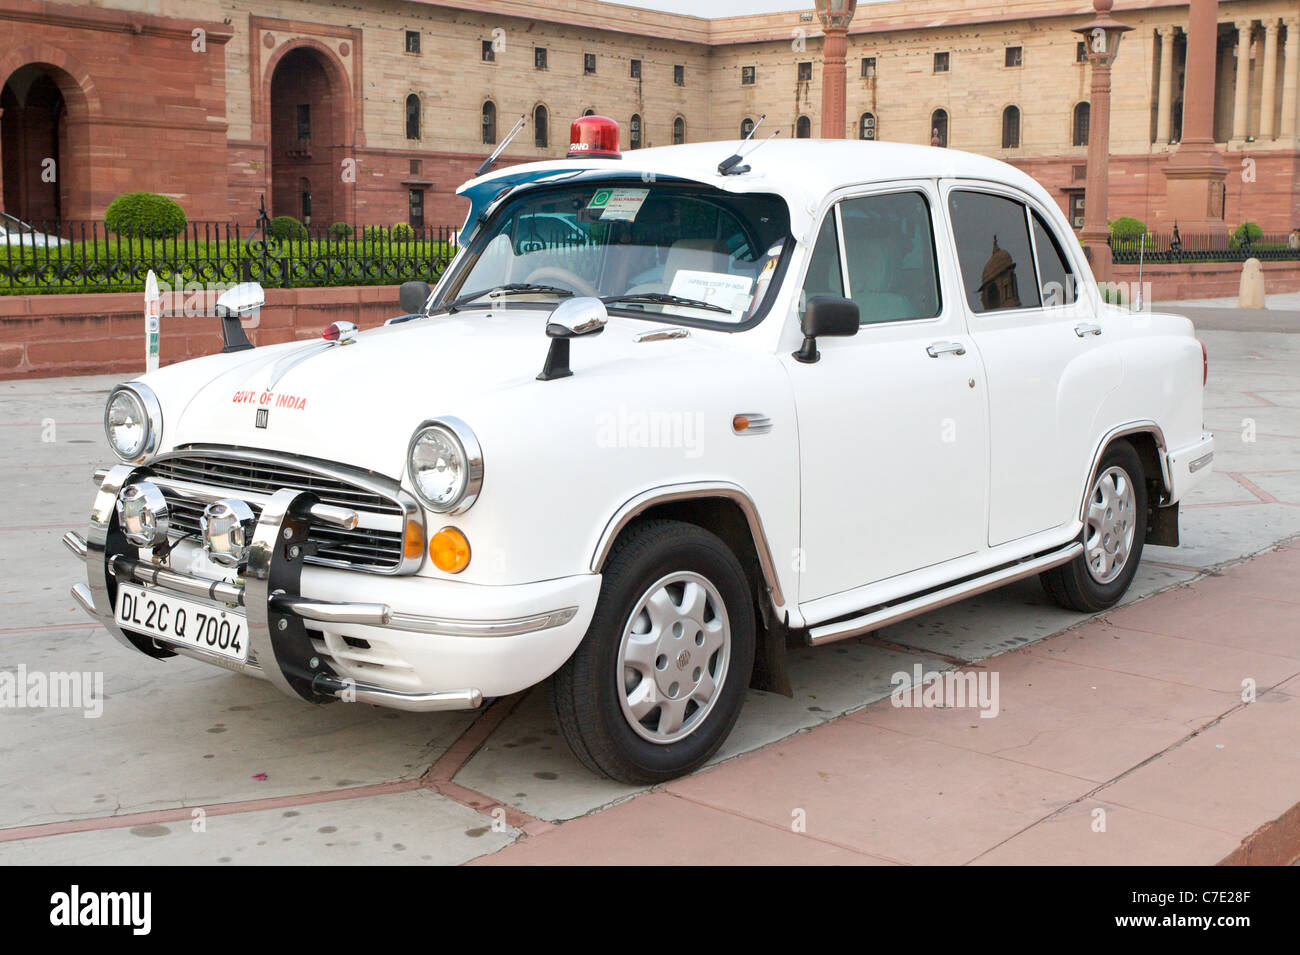 An iconic Hindustan Ambassador car parked outside of the Indian Government Building in New Delhi, India - Stock Image